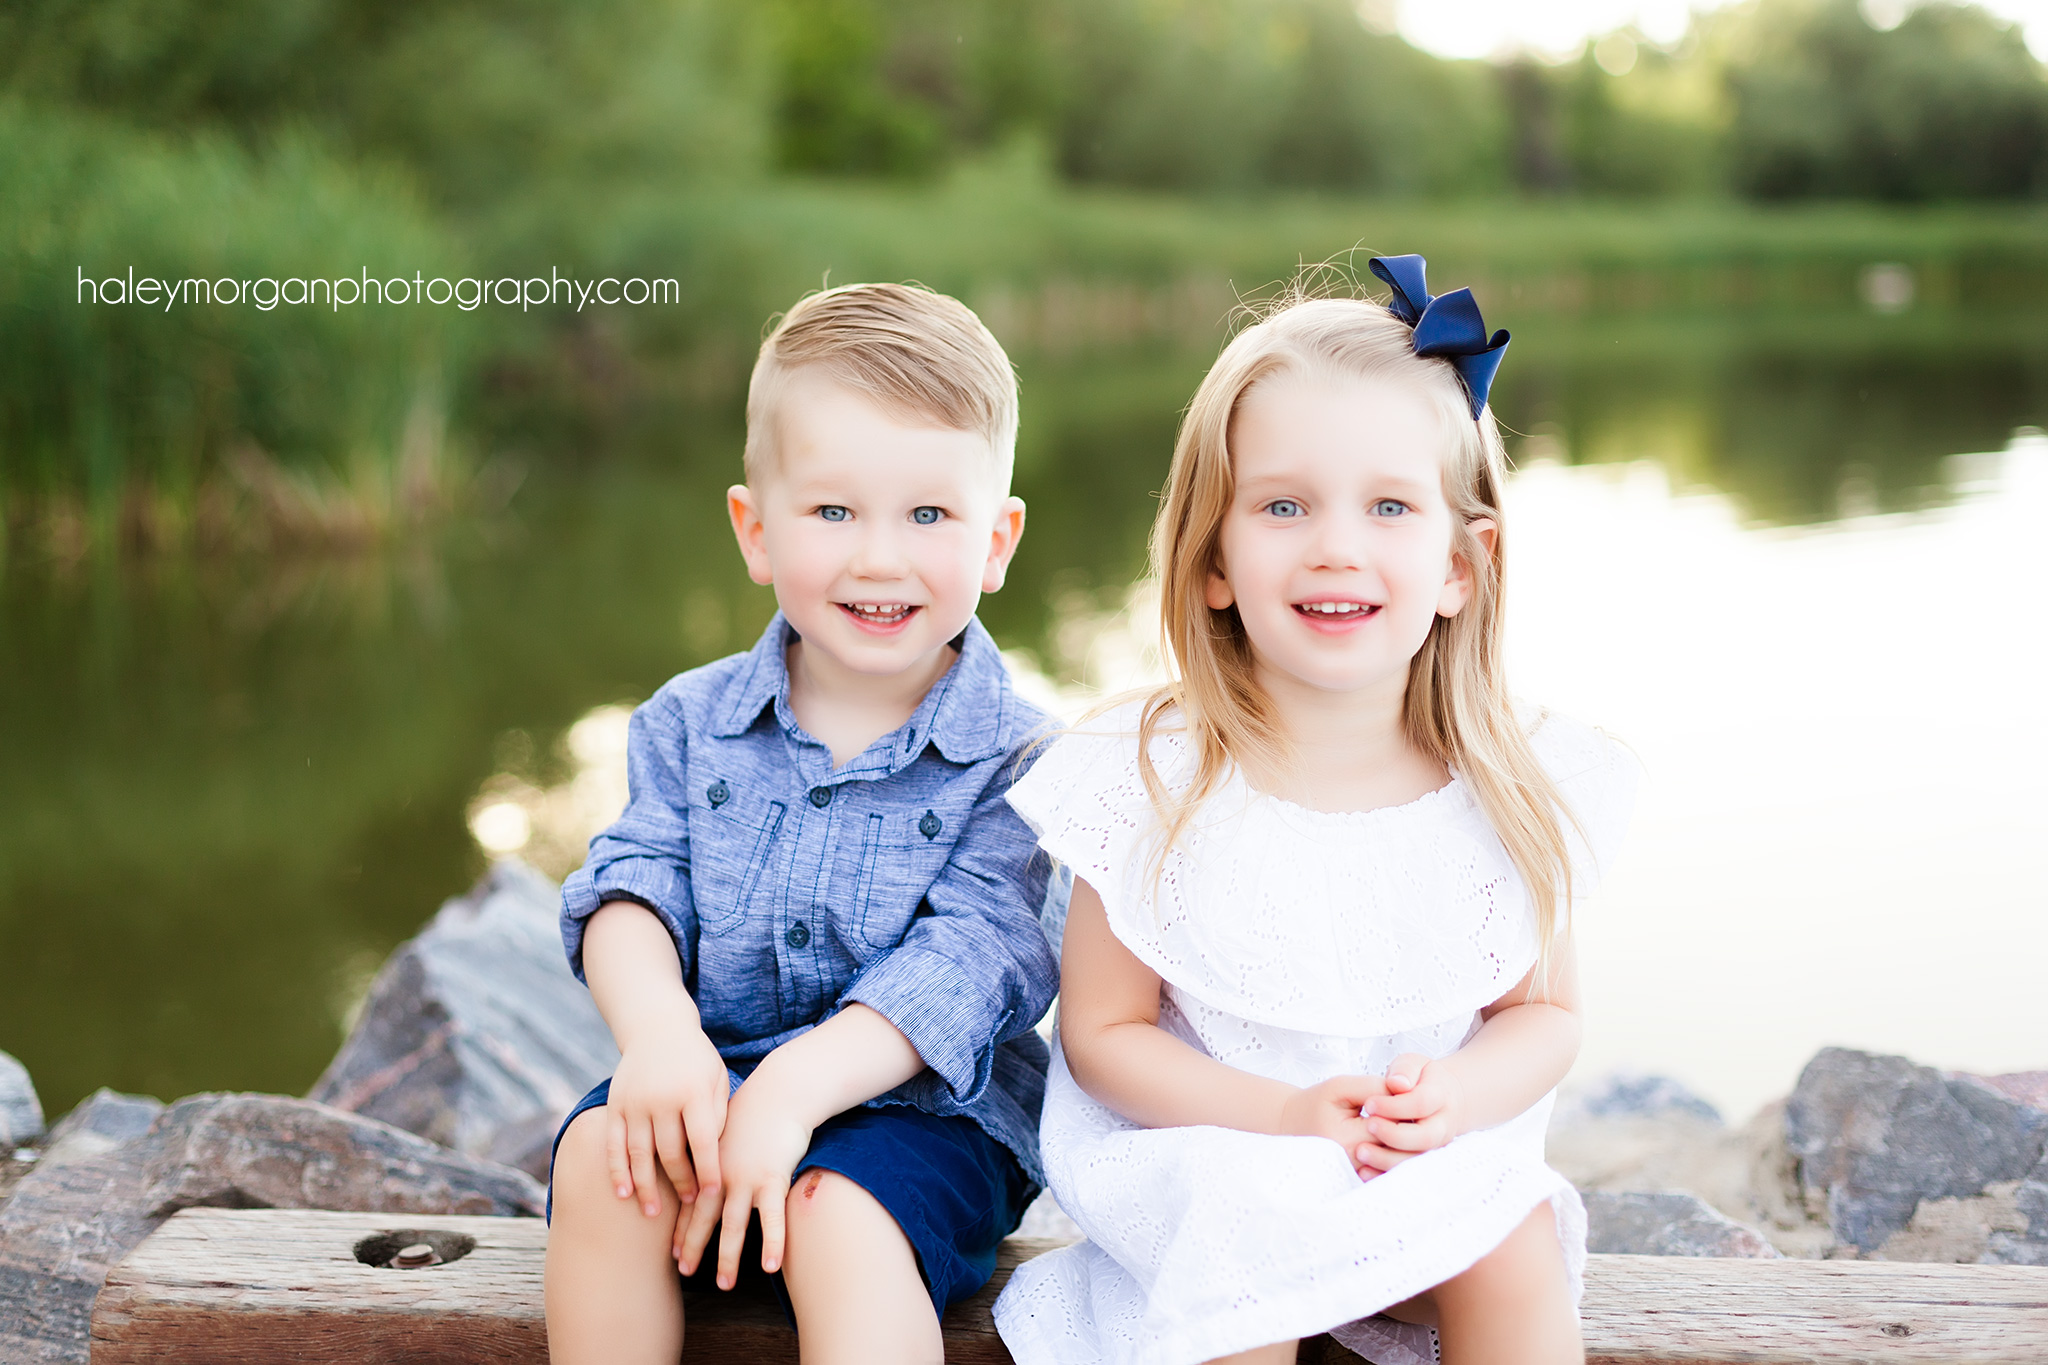 Thornton Family Photographer, Thornton Photographer, Thornton Maternity Photographer, Danahy Lake Thornton, Danahy Lake Photography, Danahy Lake Photographer, Danahy Lake Photoshoot, Danahy Lake Family Photos, Danahy Lake Maternity Photos, Haley Morgan Photography, Denver Photographer